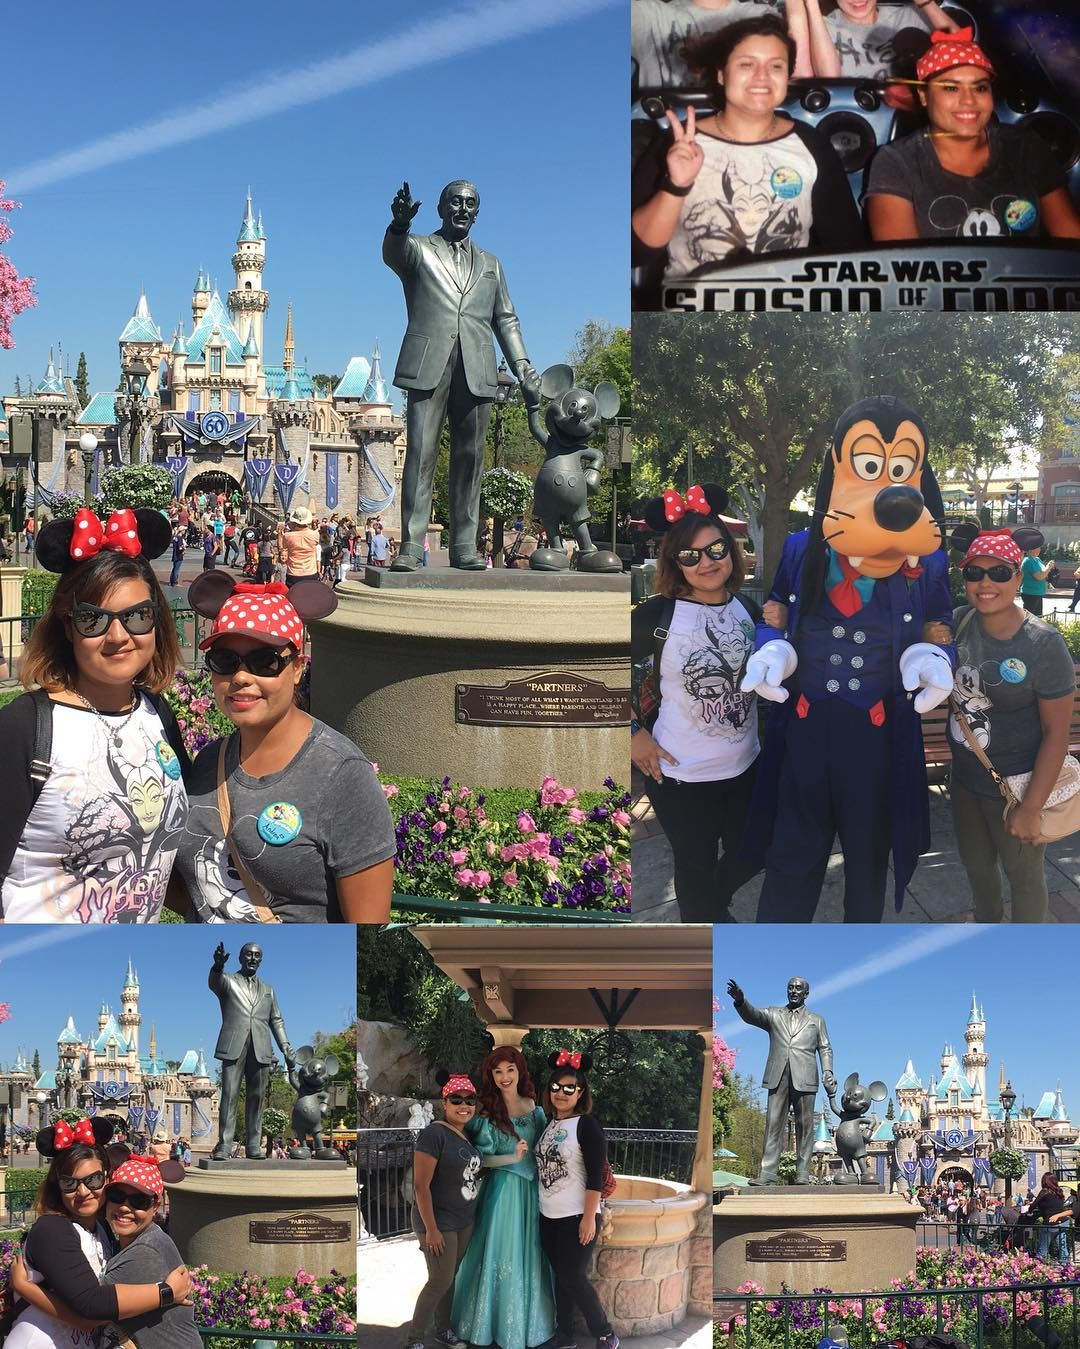 Today Was A Good Day To Be At Disneyland The Weather Was Nice Not